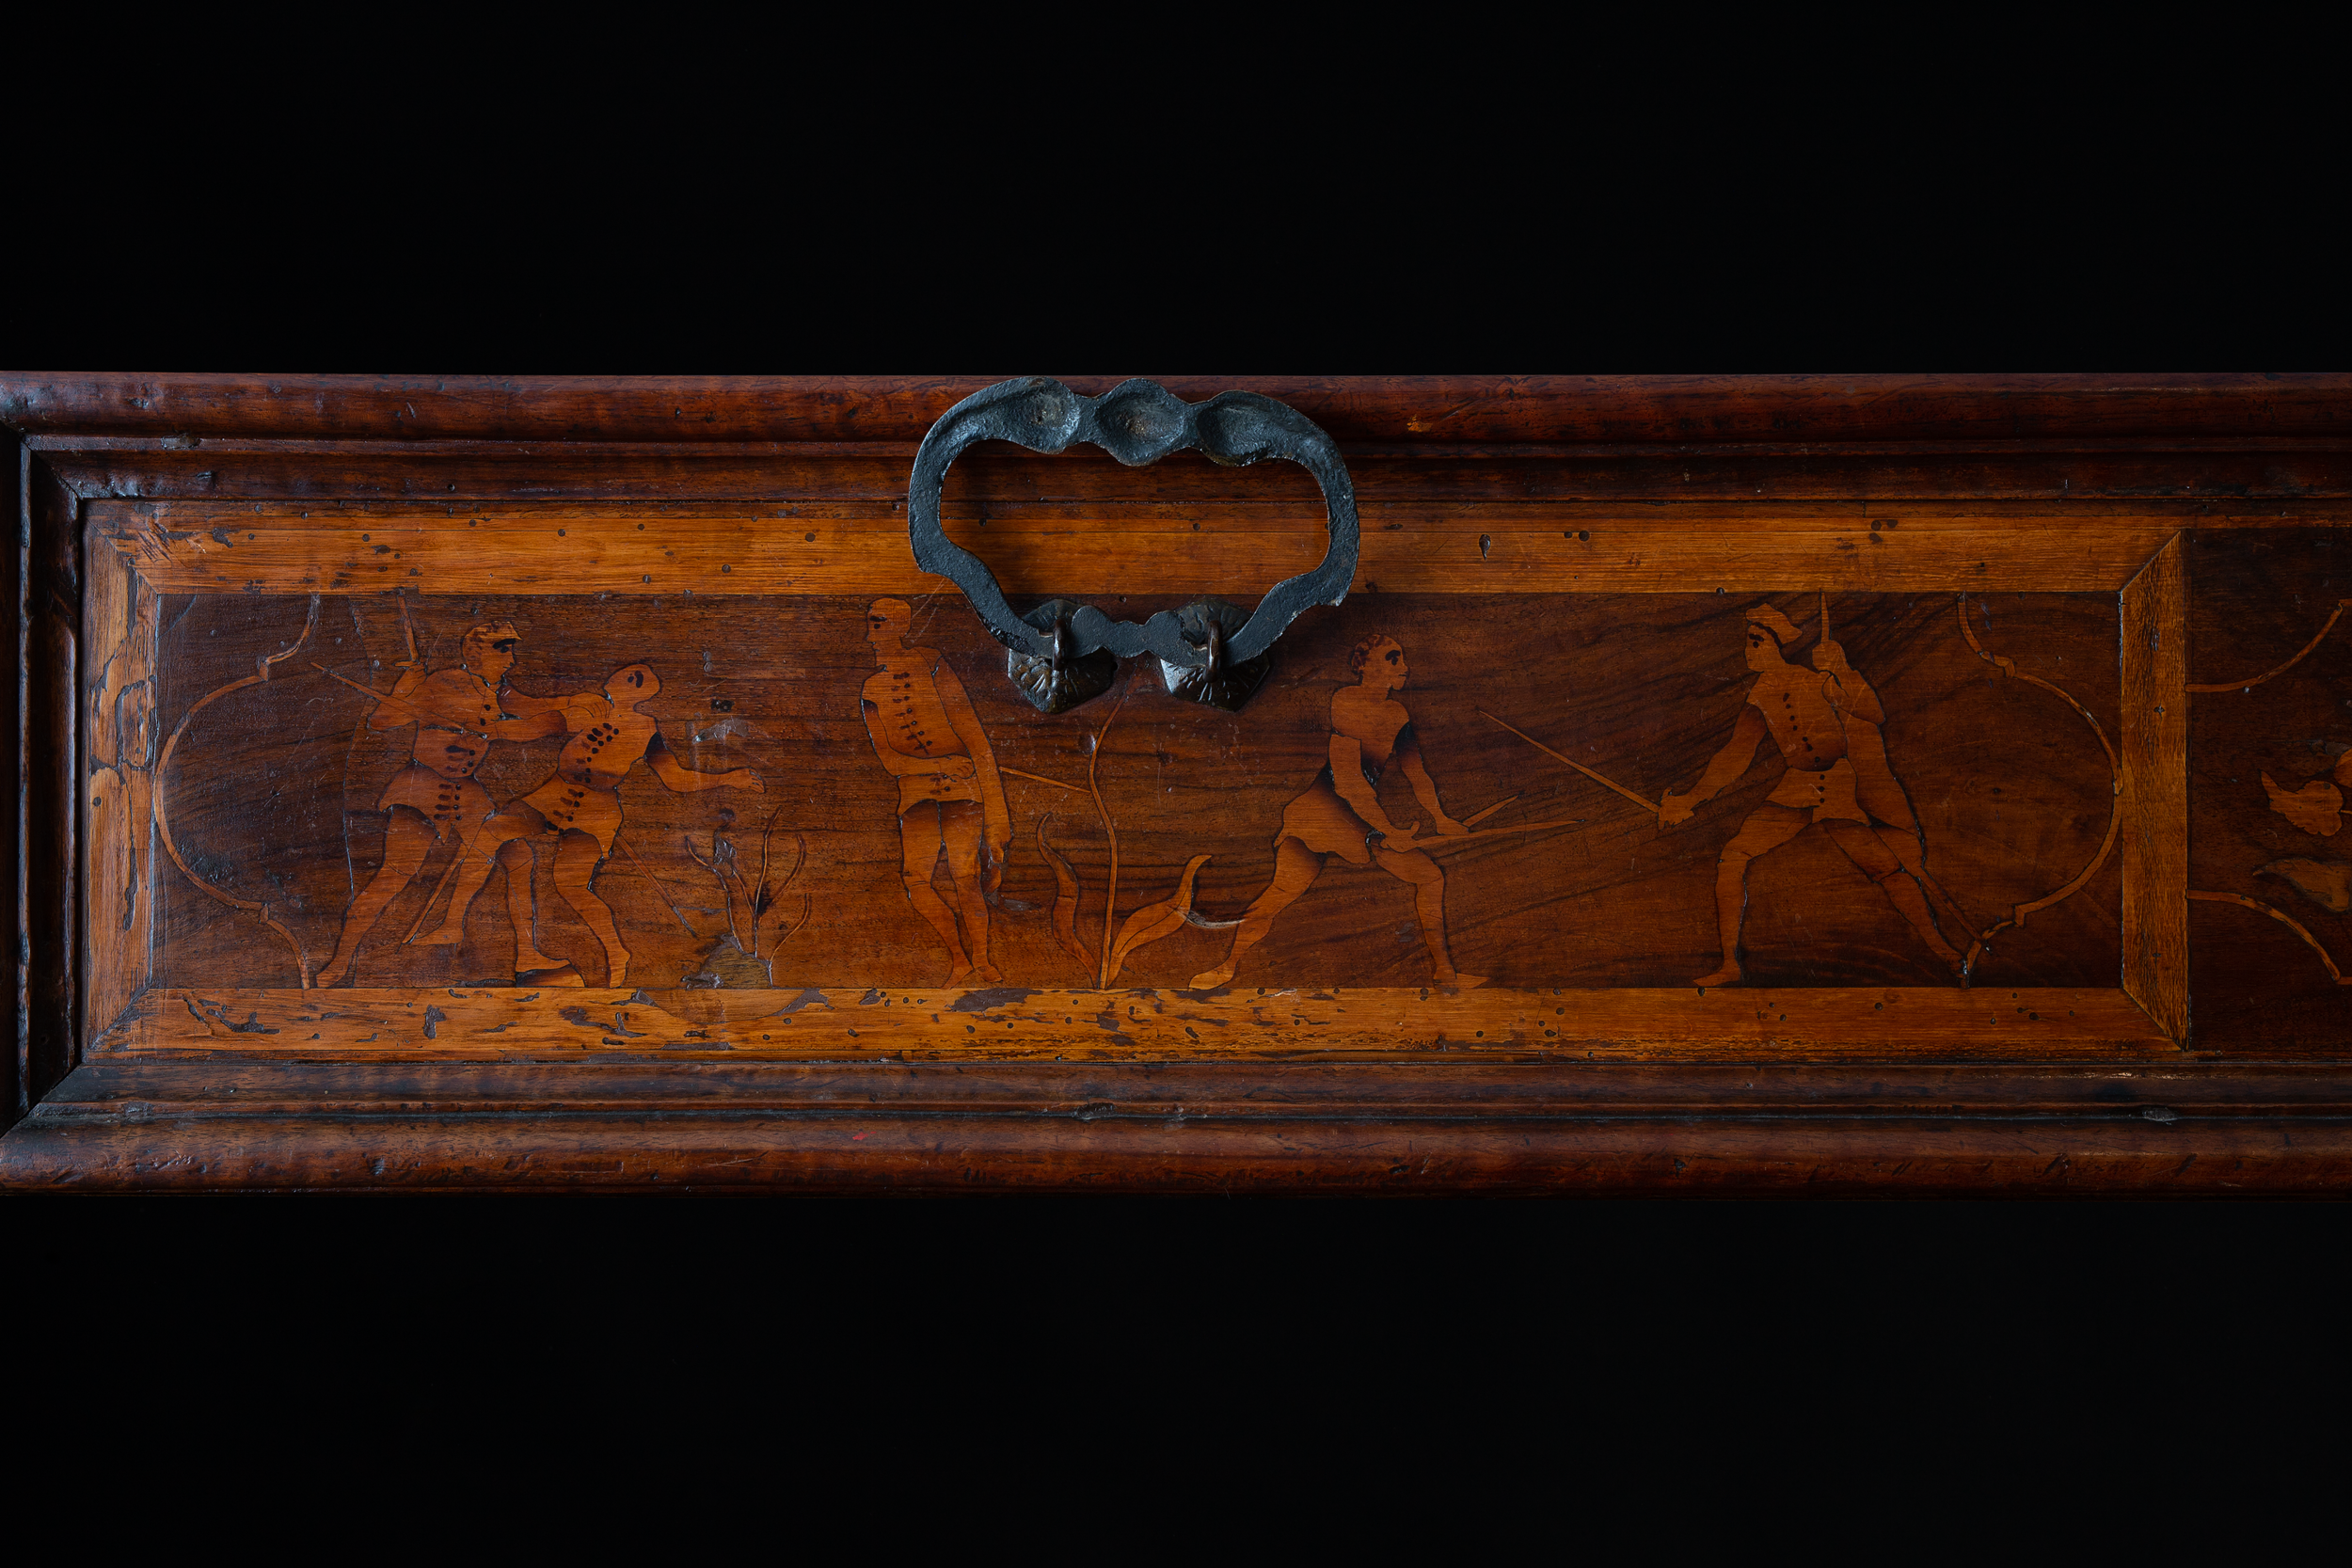 Details of the cabinet (chest of drawers - cabinet transformable into a desk of the type 'canterano'), Lombardy, 1590-1630. Wood, briar, metal. 1439 x 1120 x 610 mm.